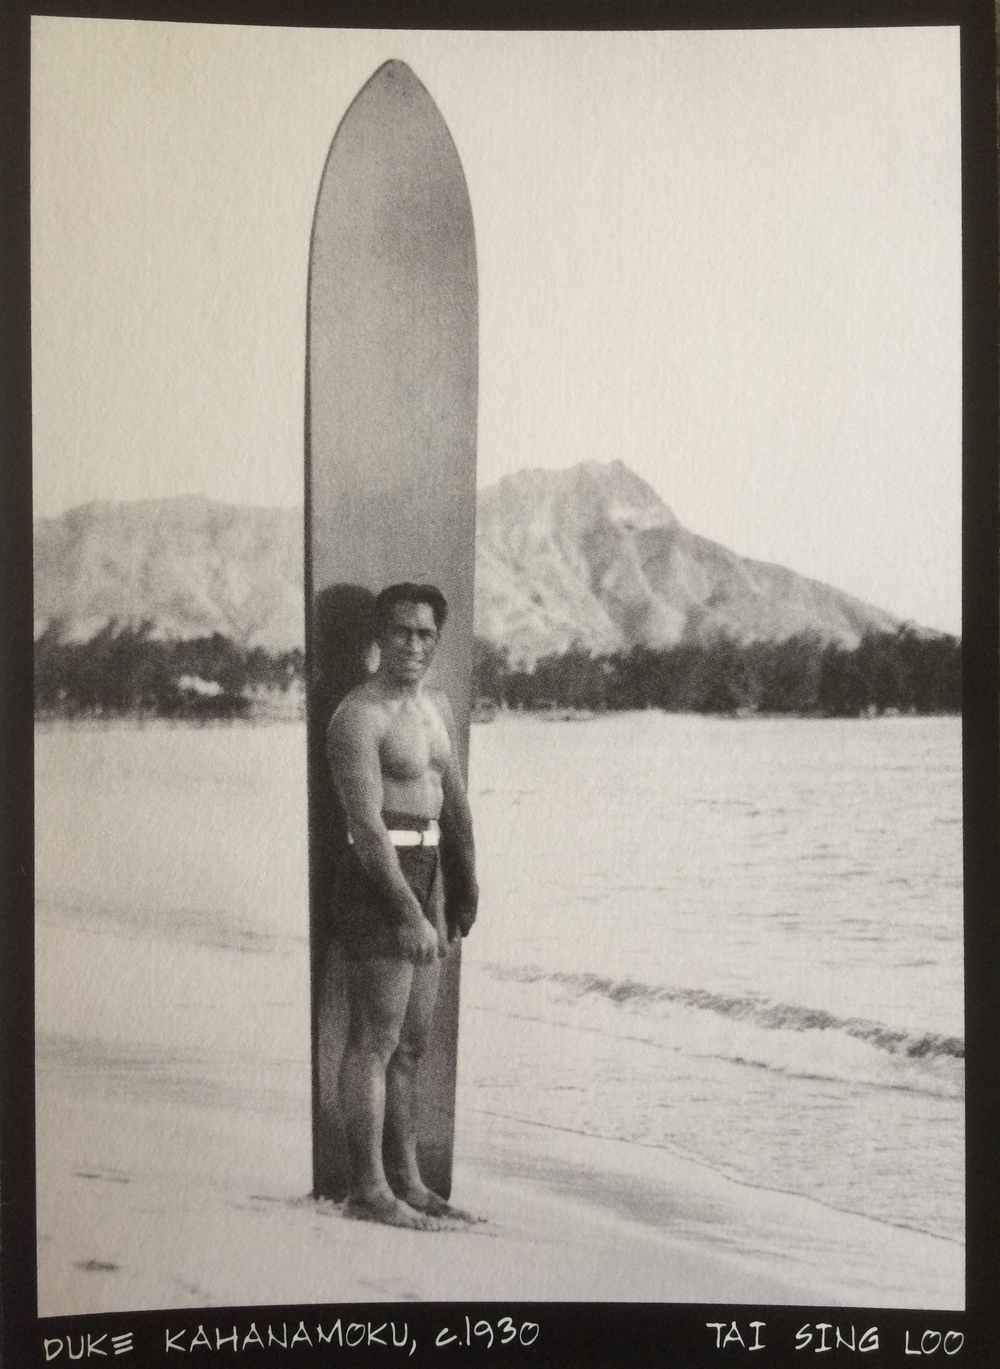 Duke Kahanamoku at Waikiki Beach, circa 1930